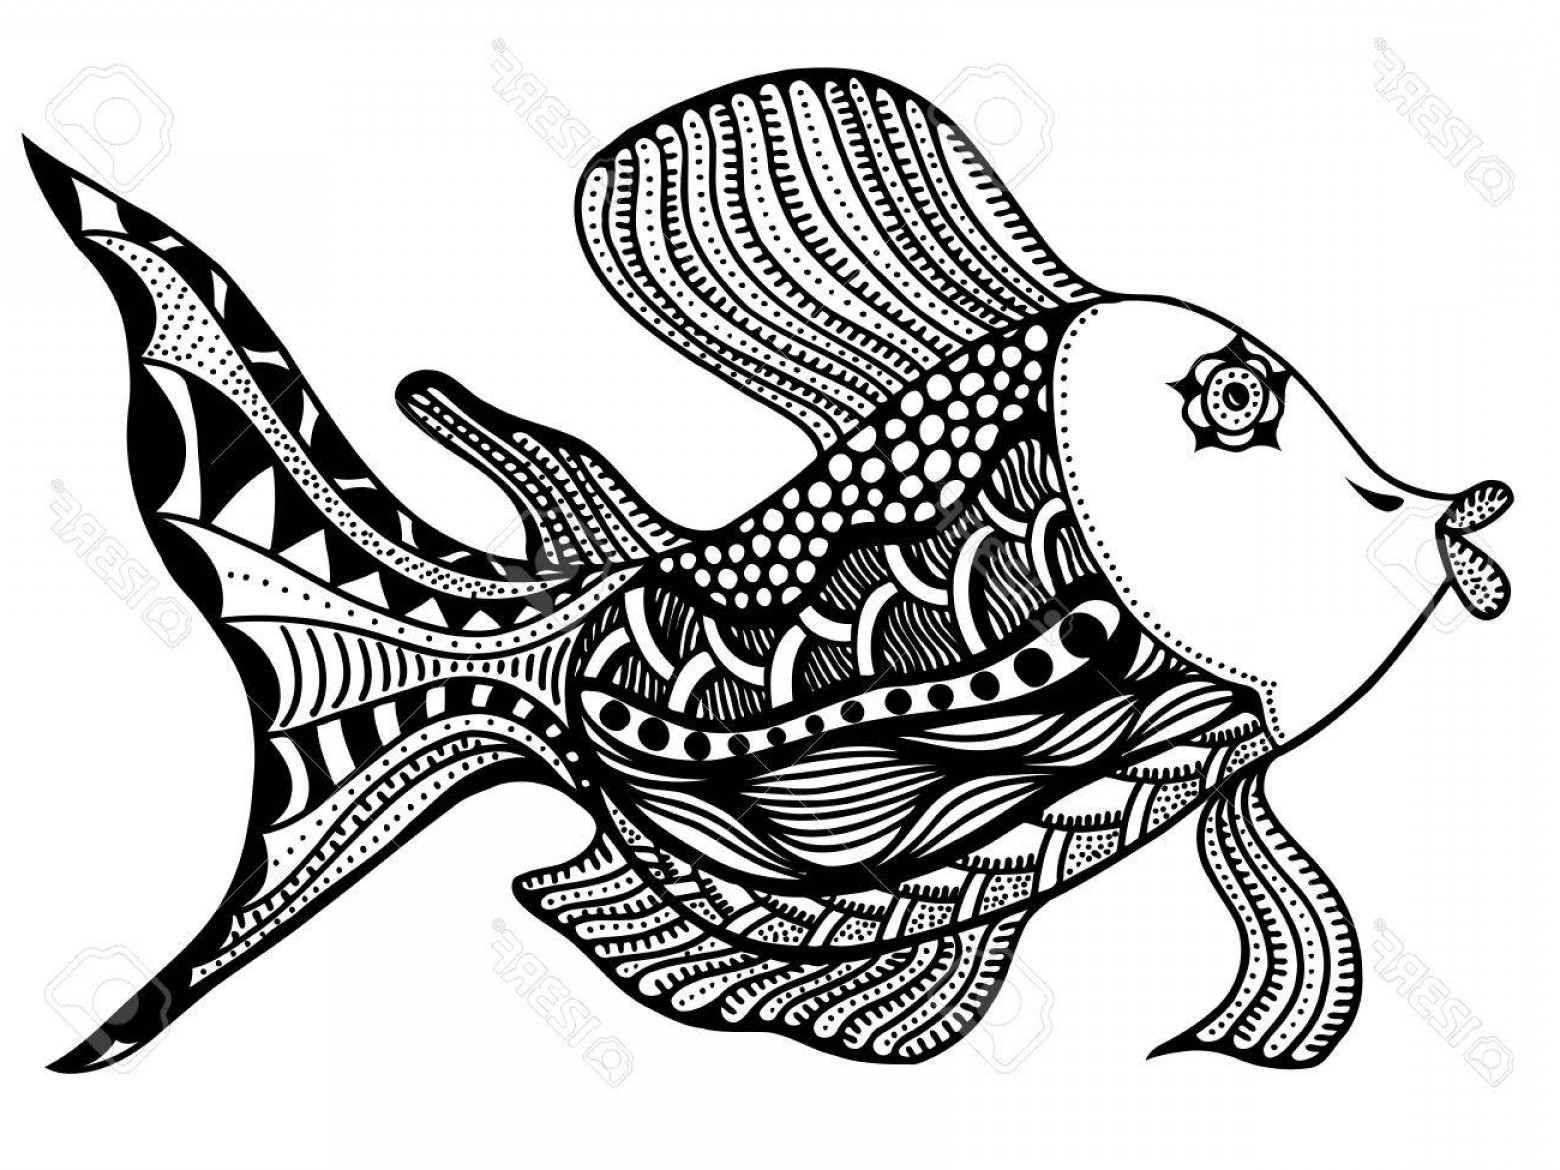 Fish Vector Graphic: Photostock Vector Vector Beautiful Hand Drawn Fish In Graphic Style With Ethnic Geometric Elements